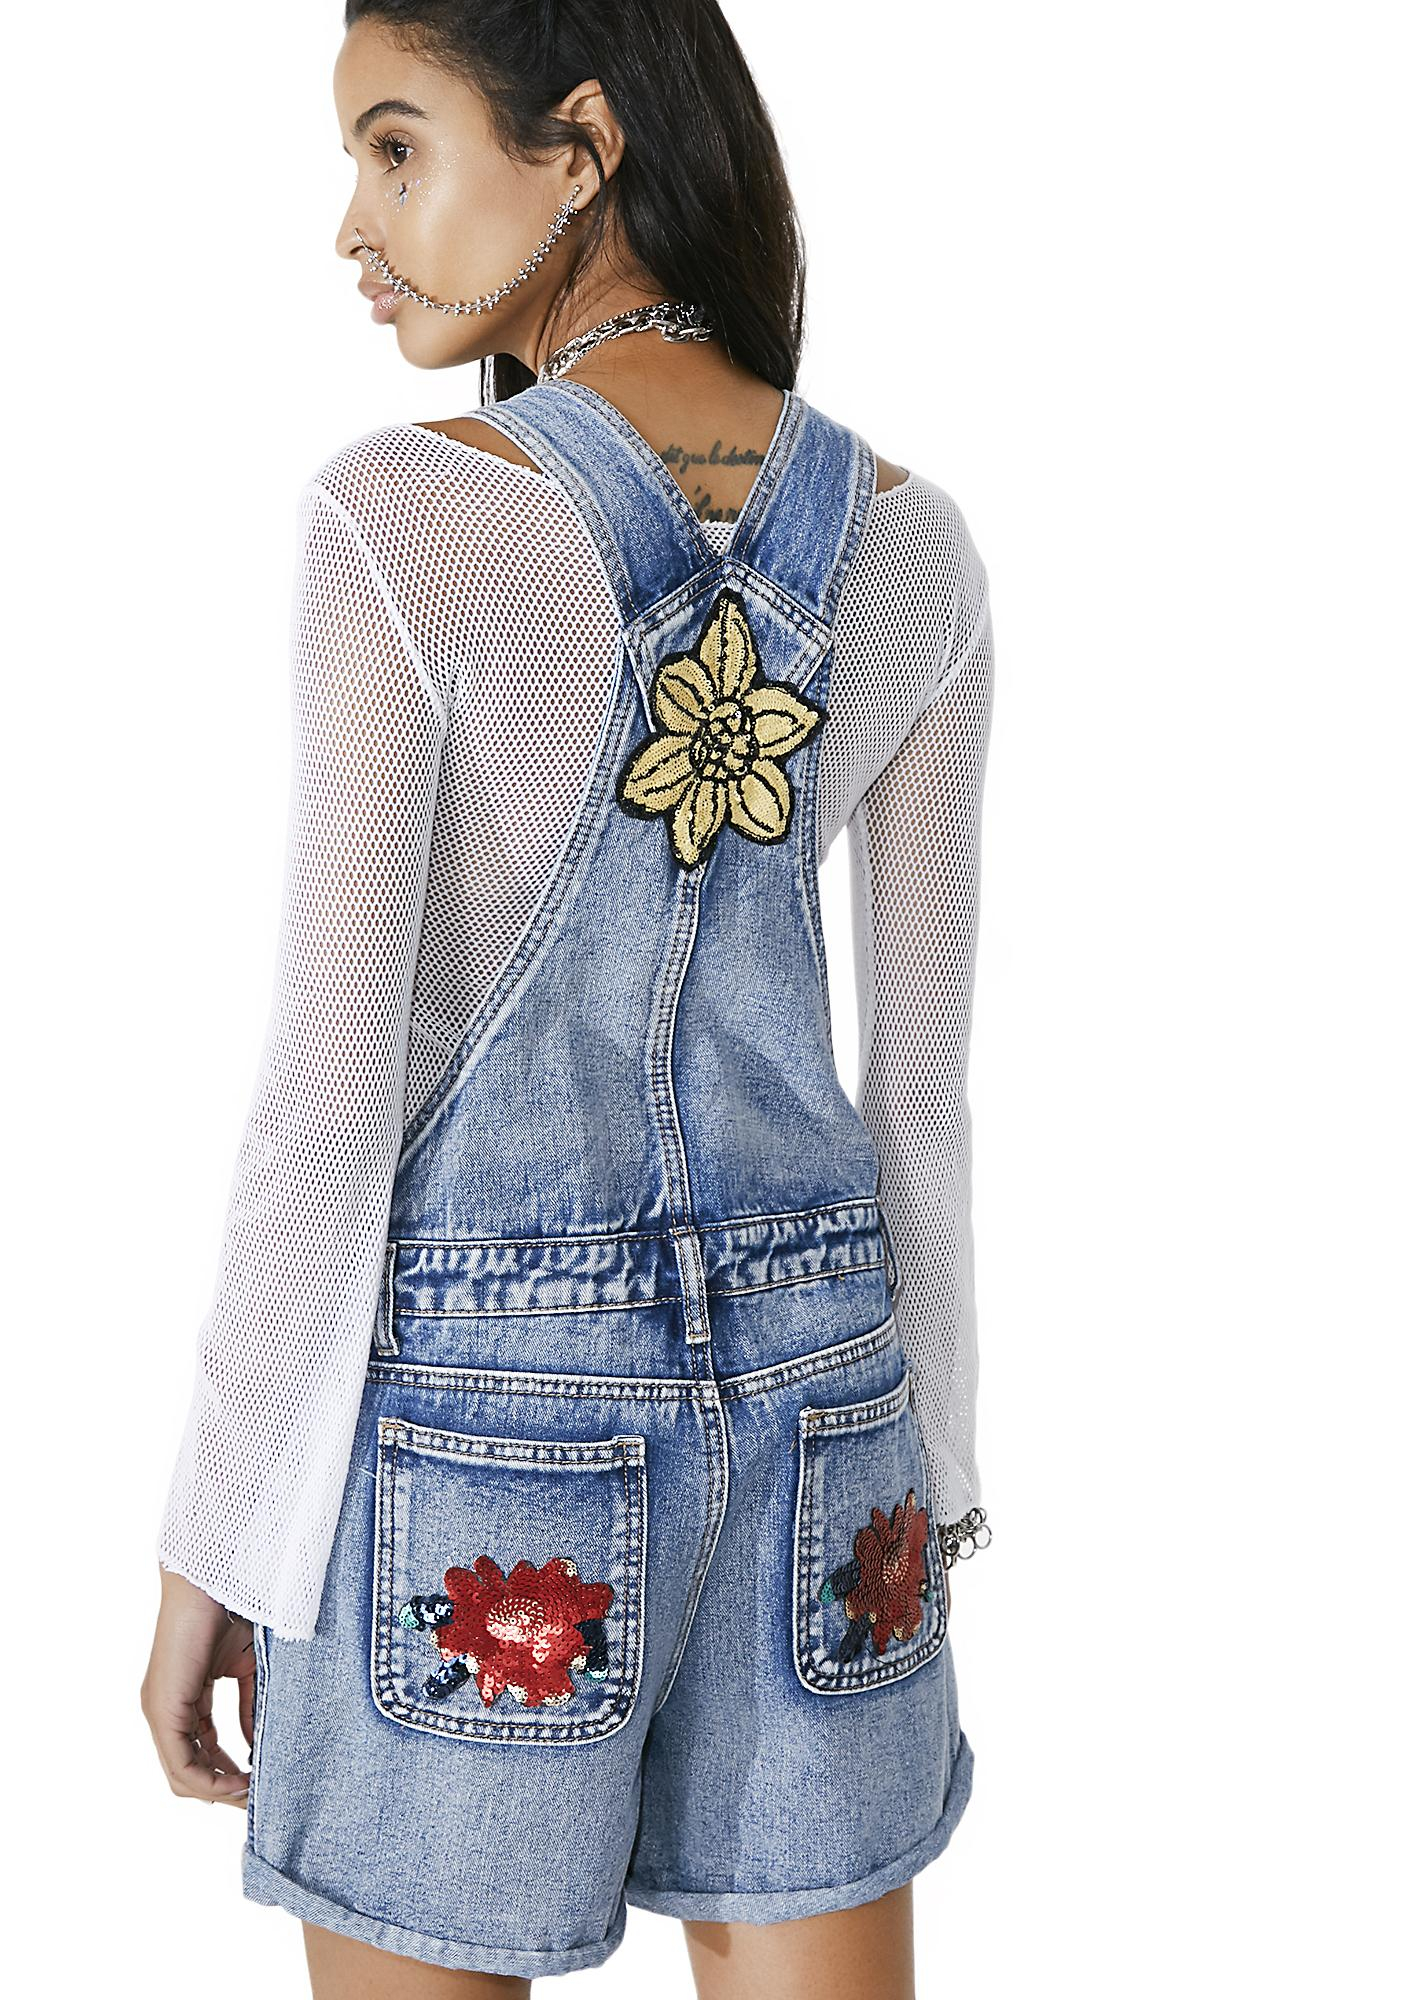 Glamorous Full Bloom Shortalls